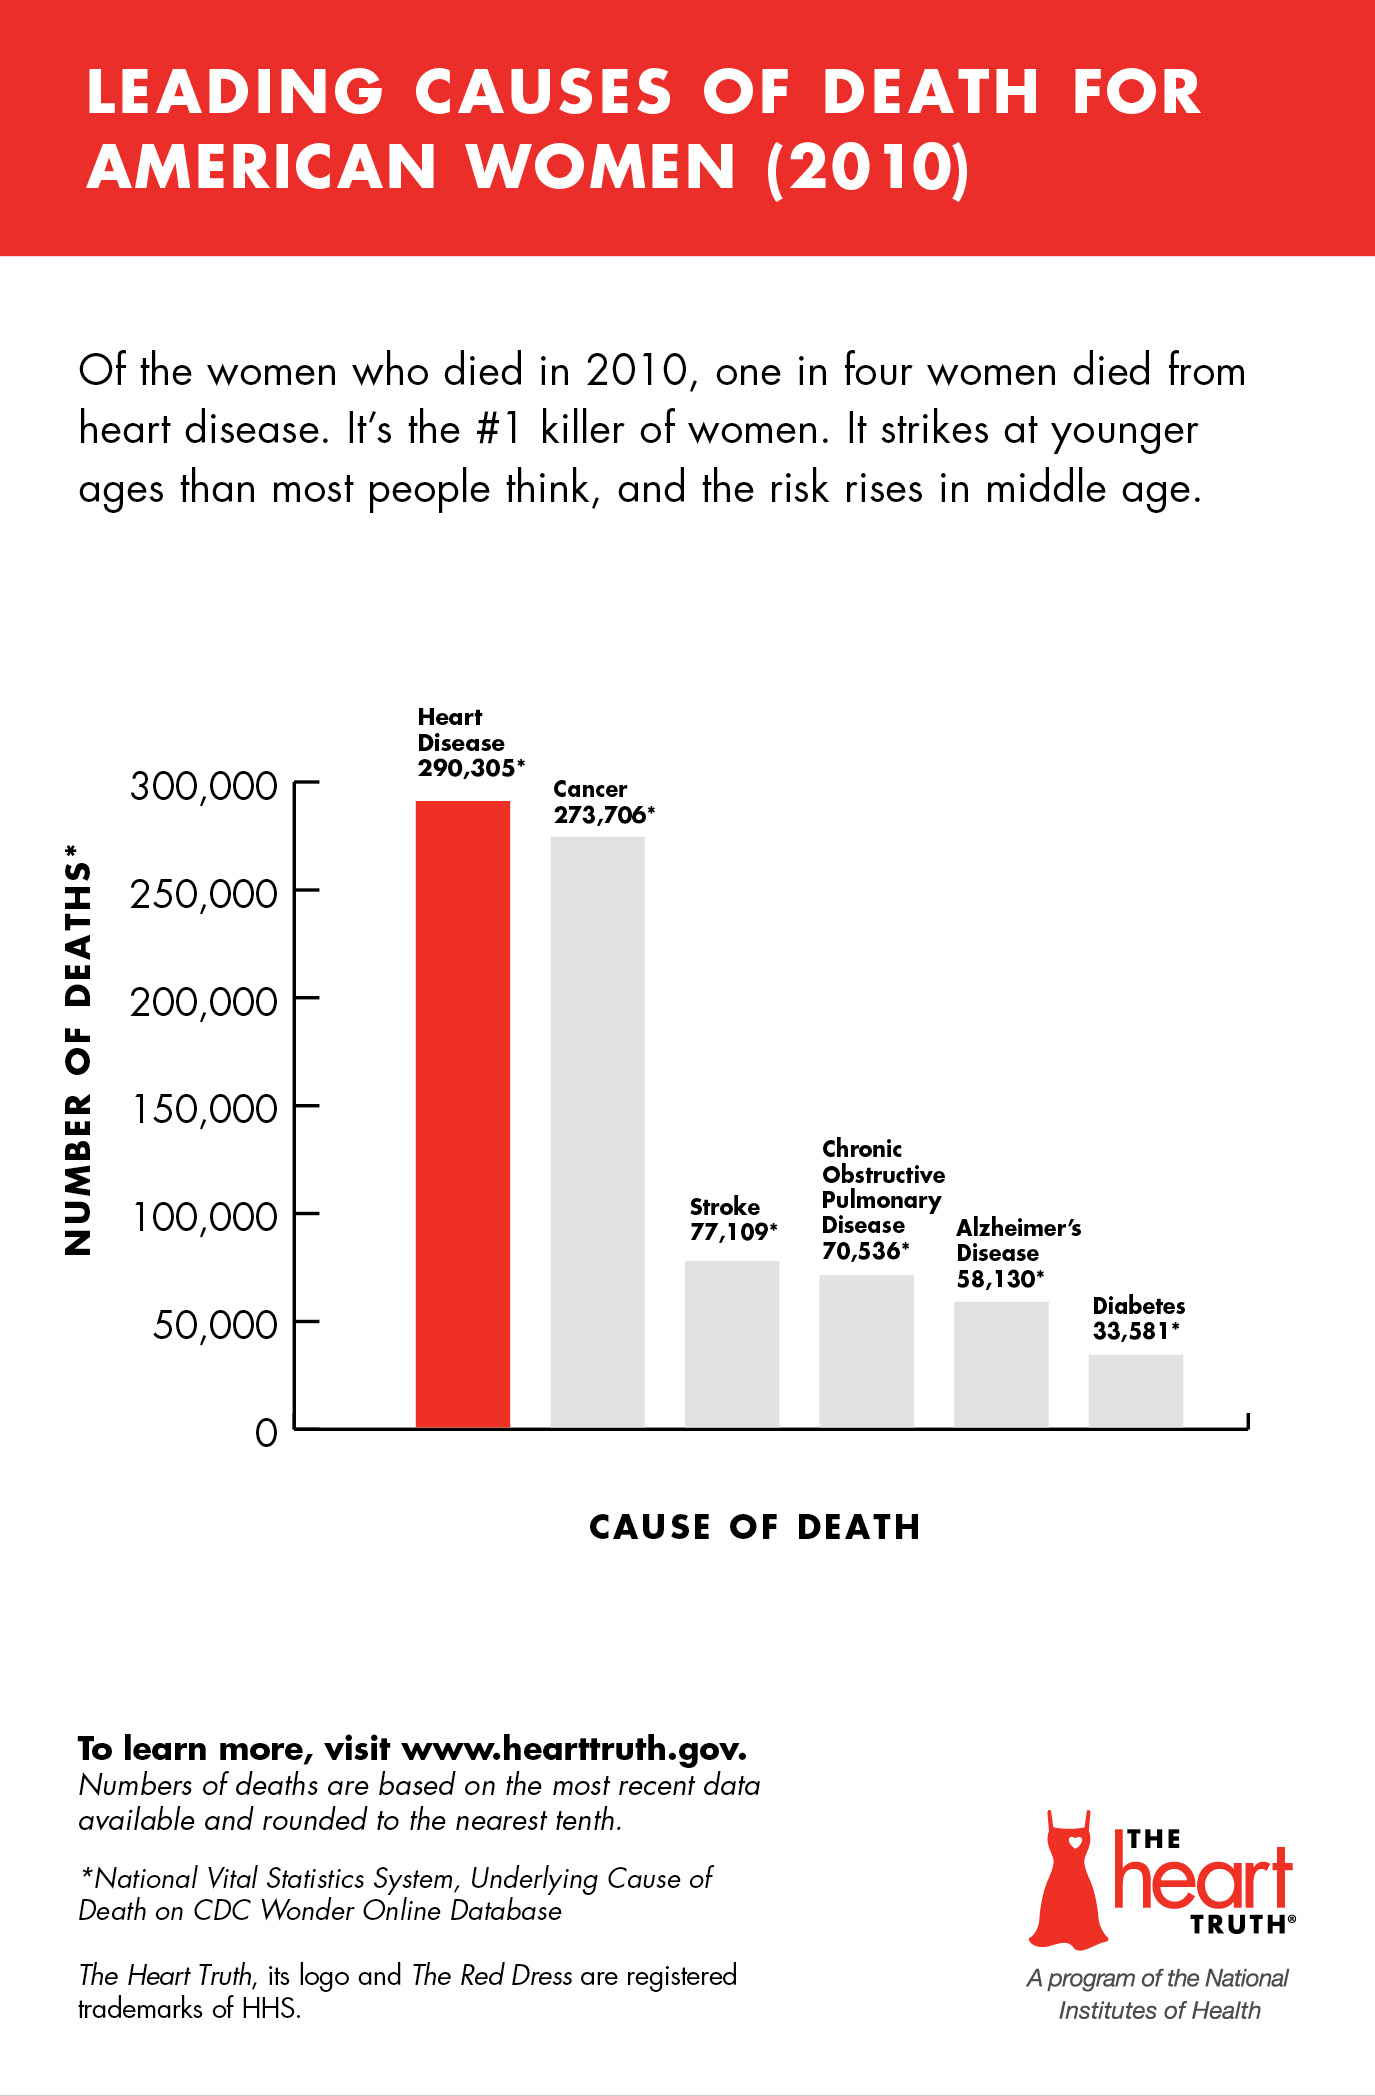 Leading Causes of Death for American Women (2010).